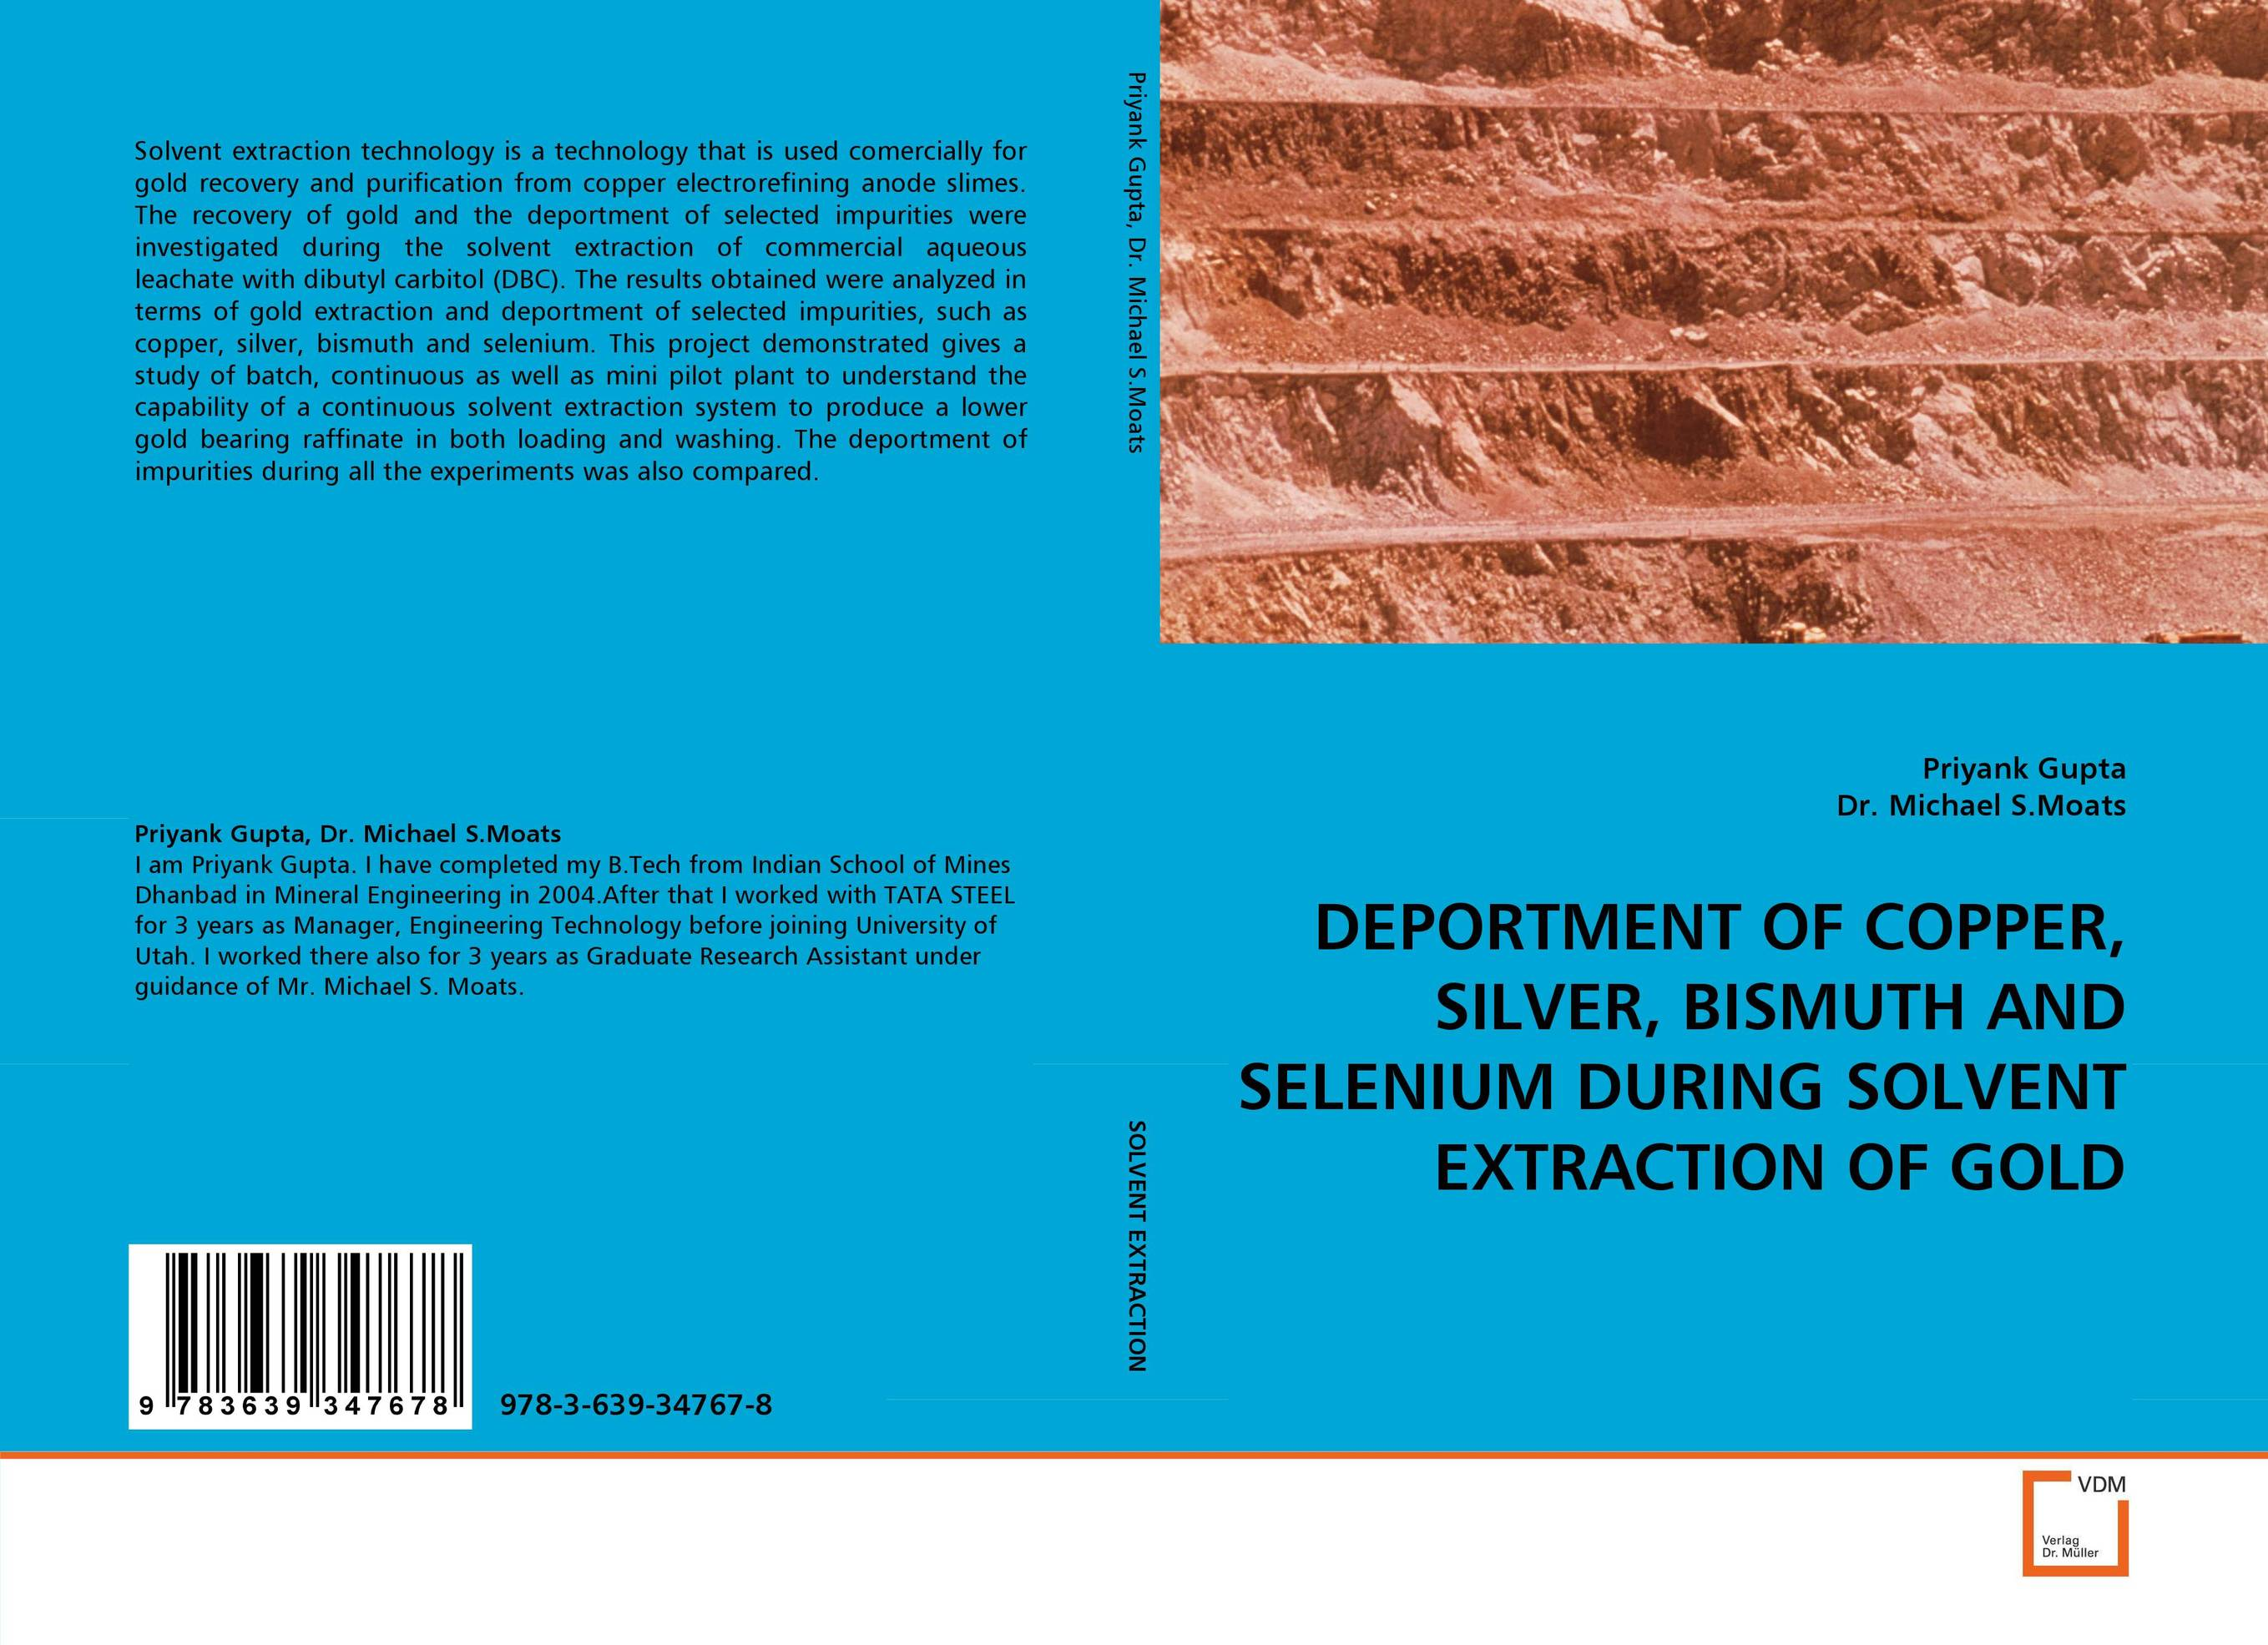 DEPORTMENT OF COPPER, SILVER, BISMUTH AND SELENIUM DURING SOLVENT EXTRACTION OF GOLD handbook of isolation and characterization of impurities in pharmaceuticals 5